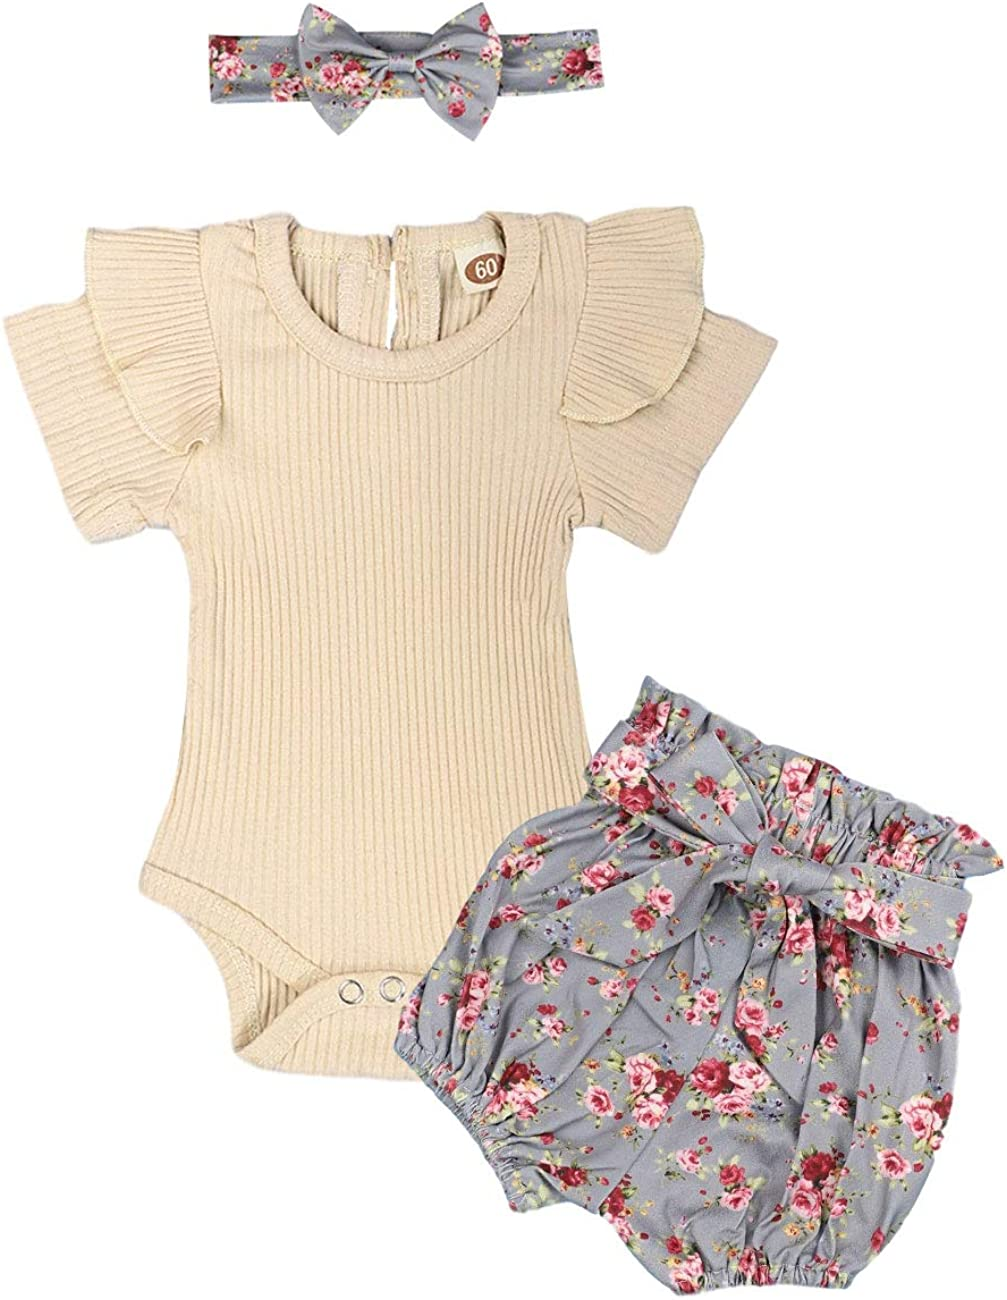 Newborn Baby Girls Clothes Outfits Infant Romper Ruffle T-Shirt Floral Pants Cute Toddler Baby Girl Clothes Set